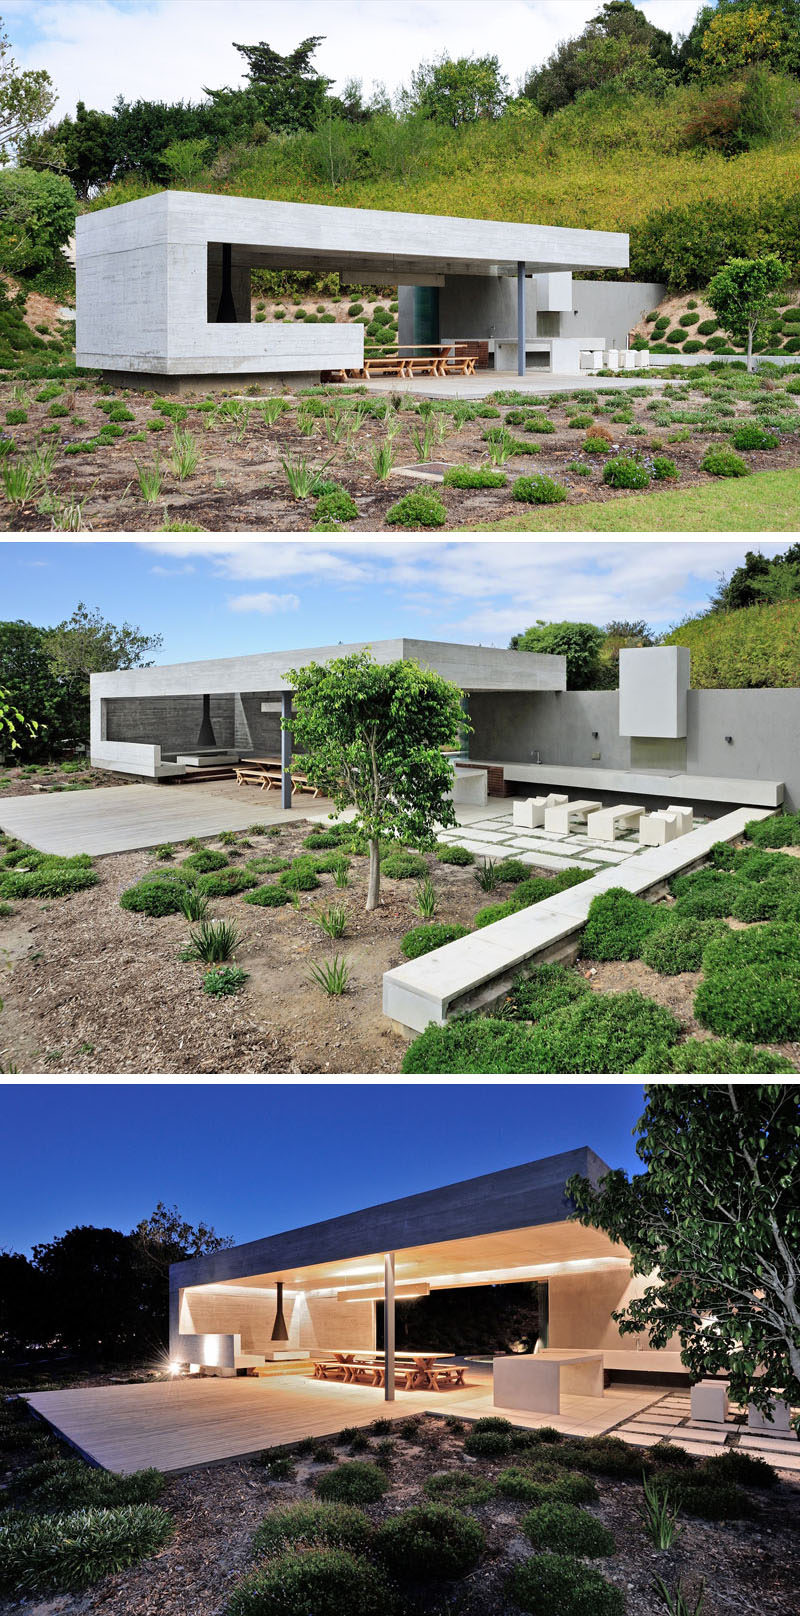 this concrete garden pavilion was designed with multiple areas for